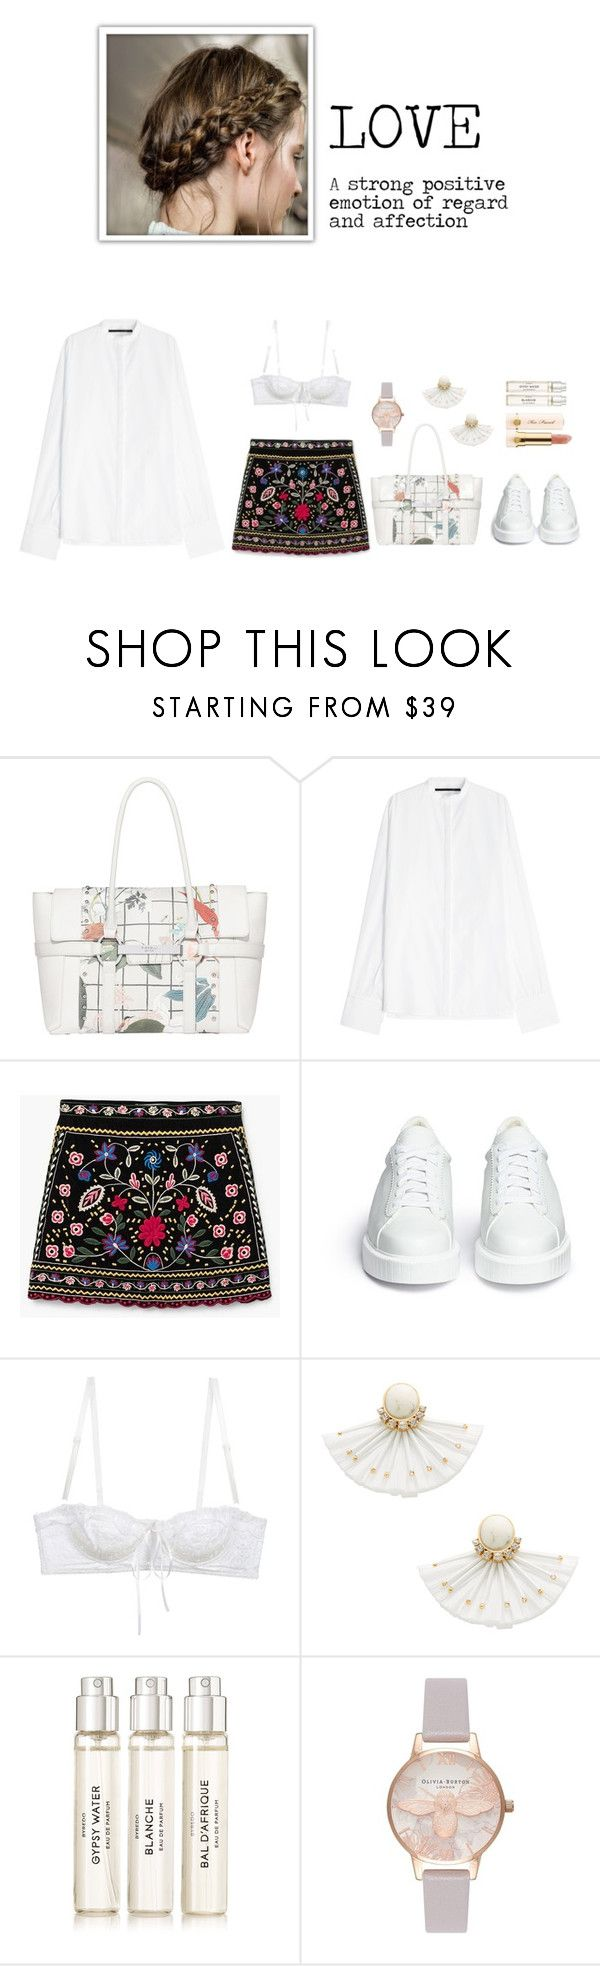 """Untitled #266"" by shoylove-1 ❤ liked on Polyvore featuring Fiorelli, Haider Ackermann, MANGO, Robert Clergerie, Dolce&Gabbana, Kate Spade, Too Faced Cosmetics, Byredo and Olivia Burton"